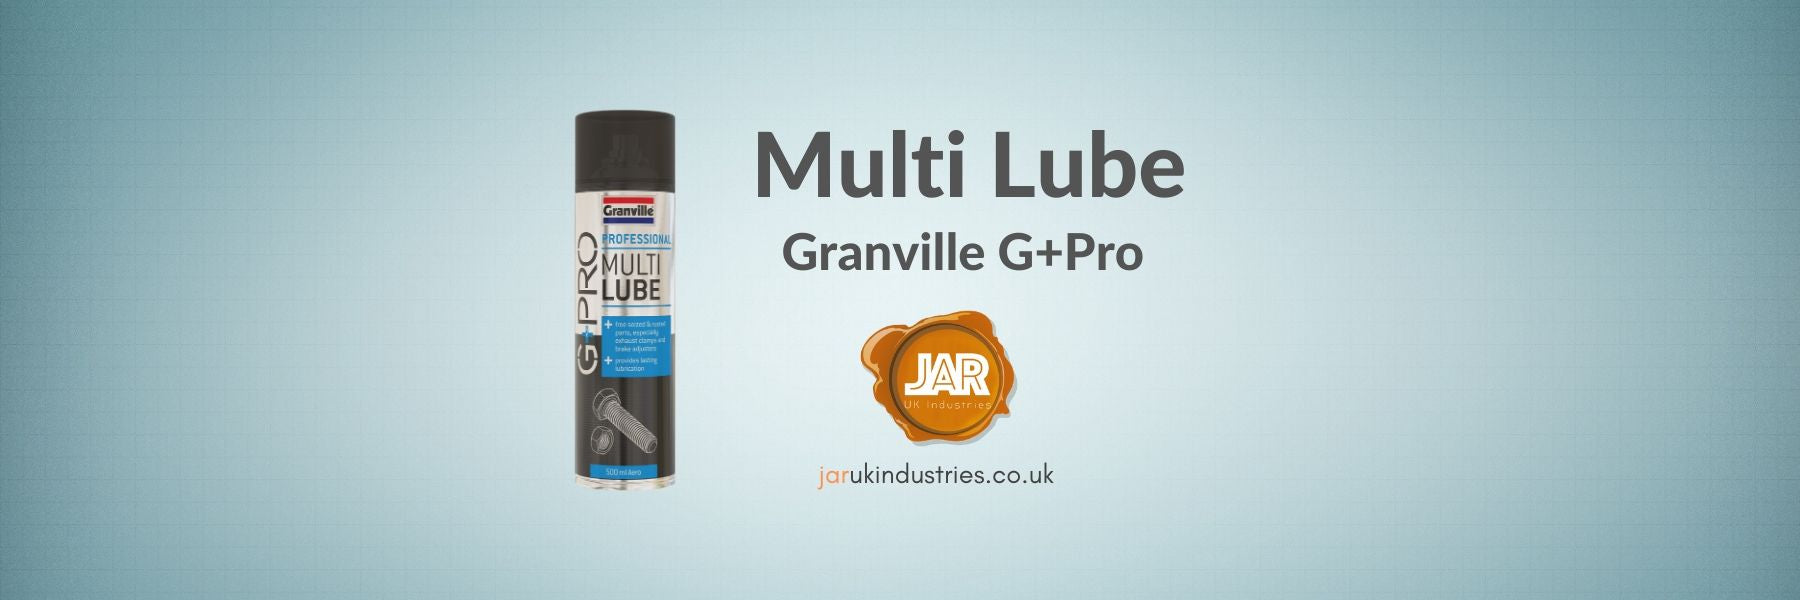 Granville G+Pro Multi Lube 500ml Aerosol Maintenance Spray | Product Overview